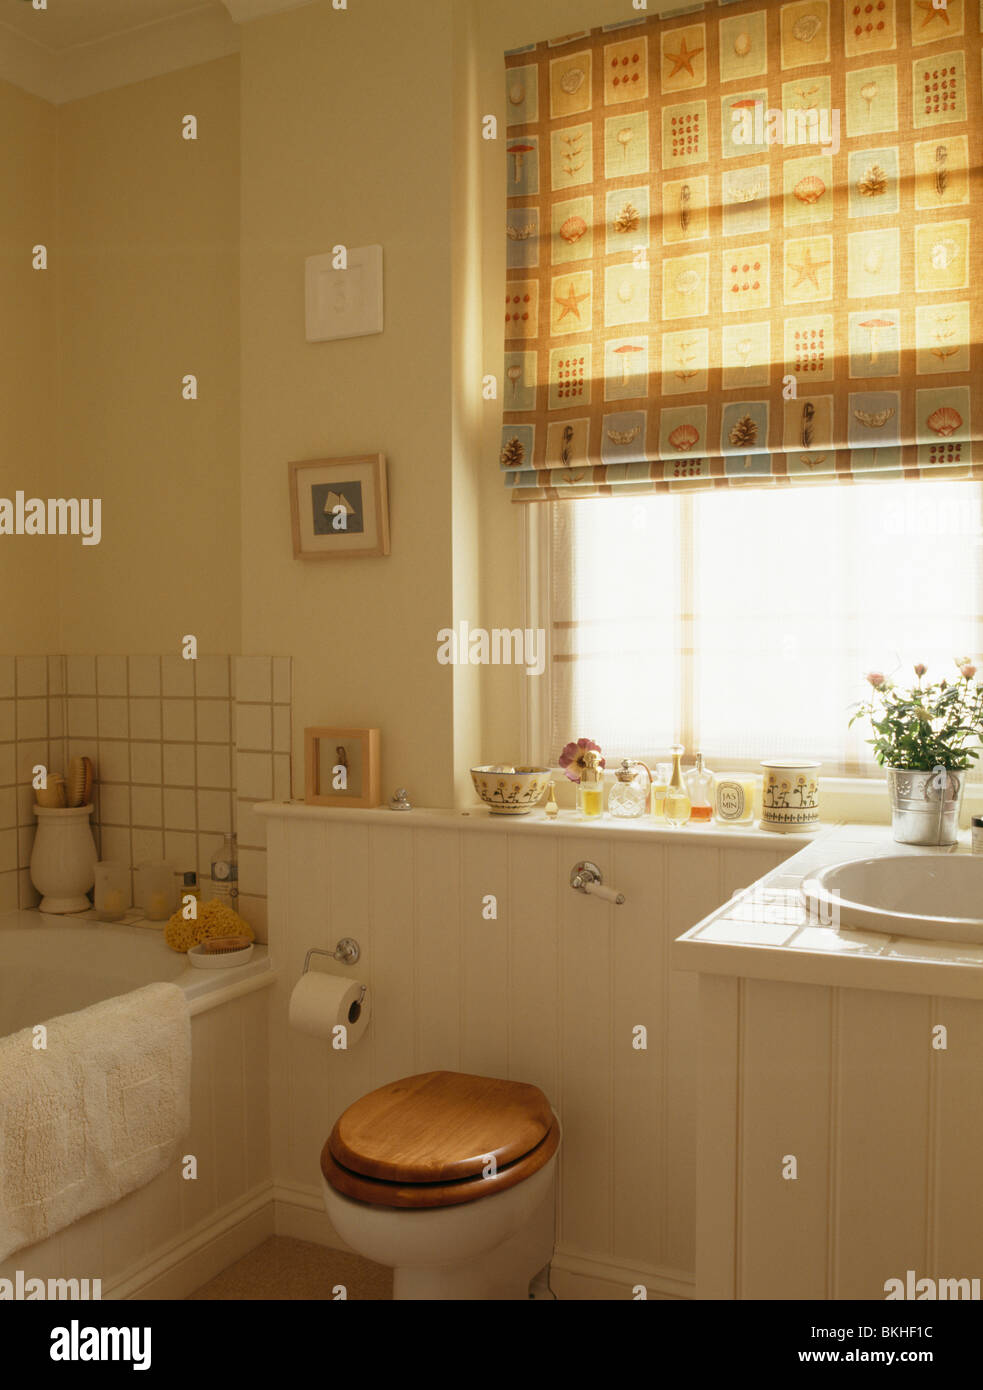 toilet with wooden seat below window with osbornelittle neutral blind in small cream bathroom